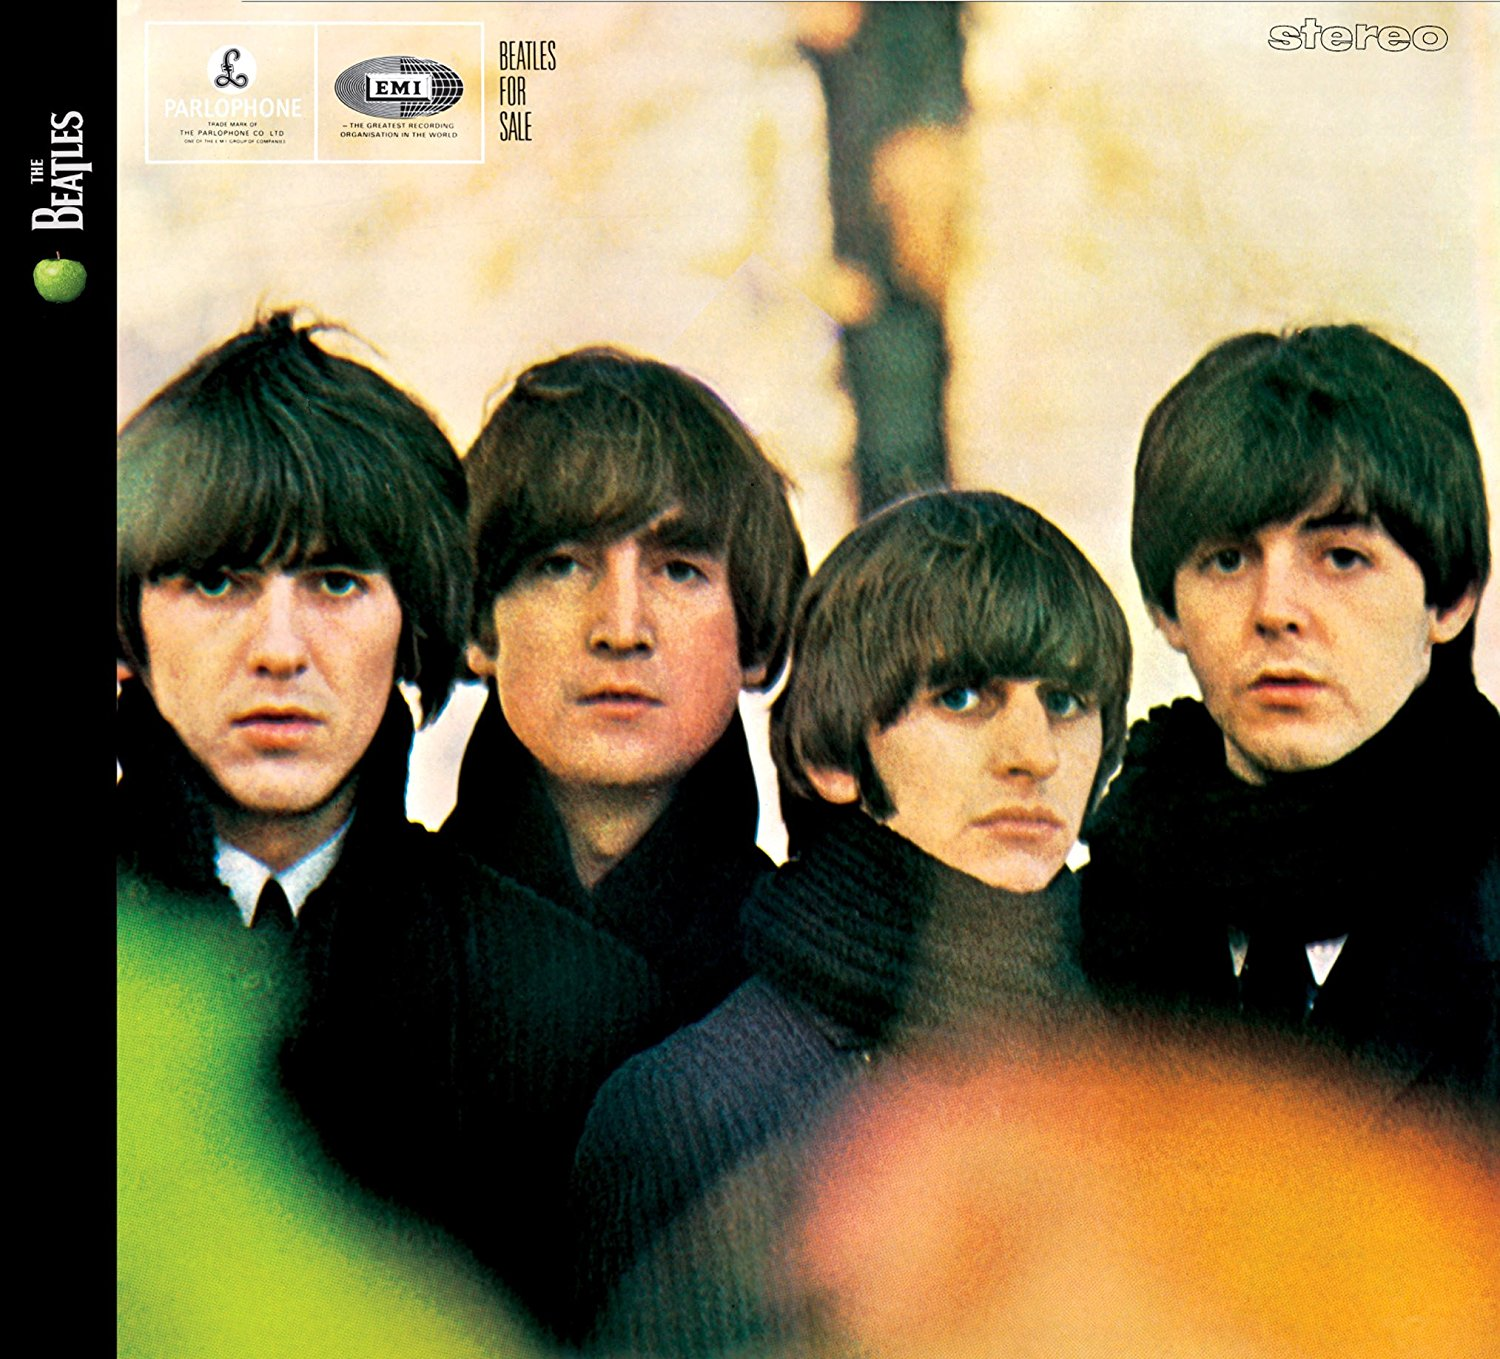 「Mr.Moonlight」収録アルバム『Beatles for Sale』/The Beatles